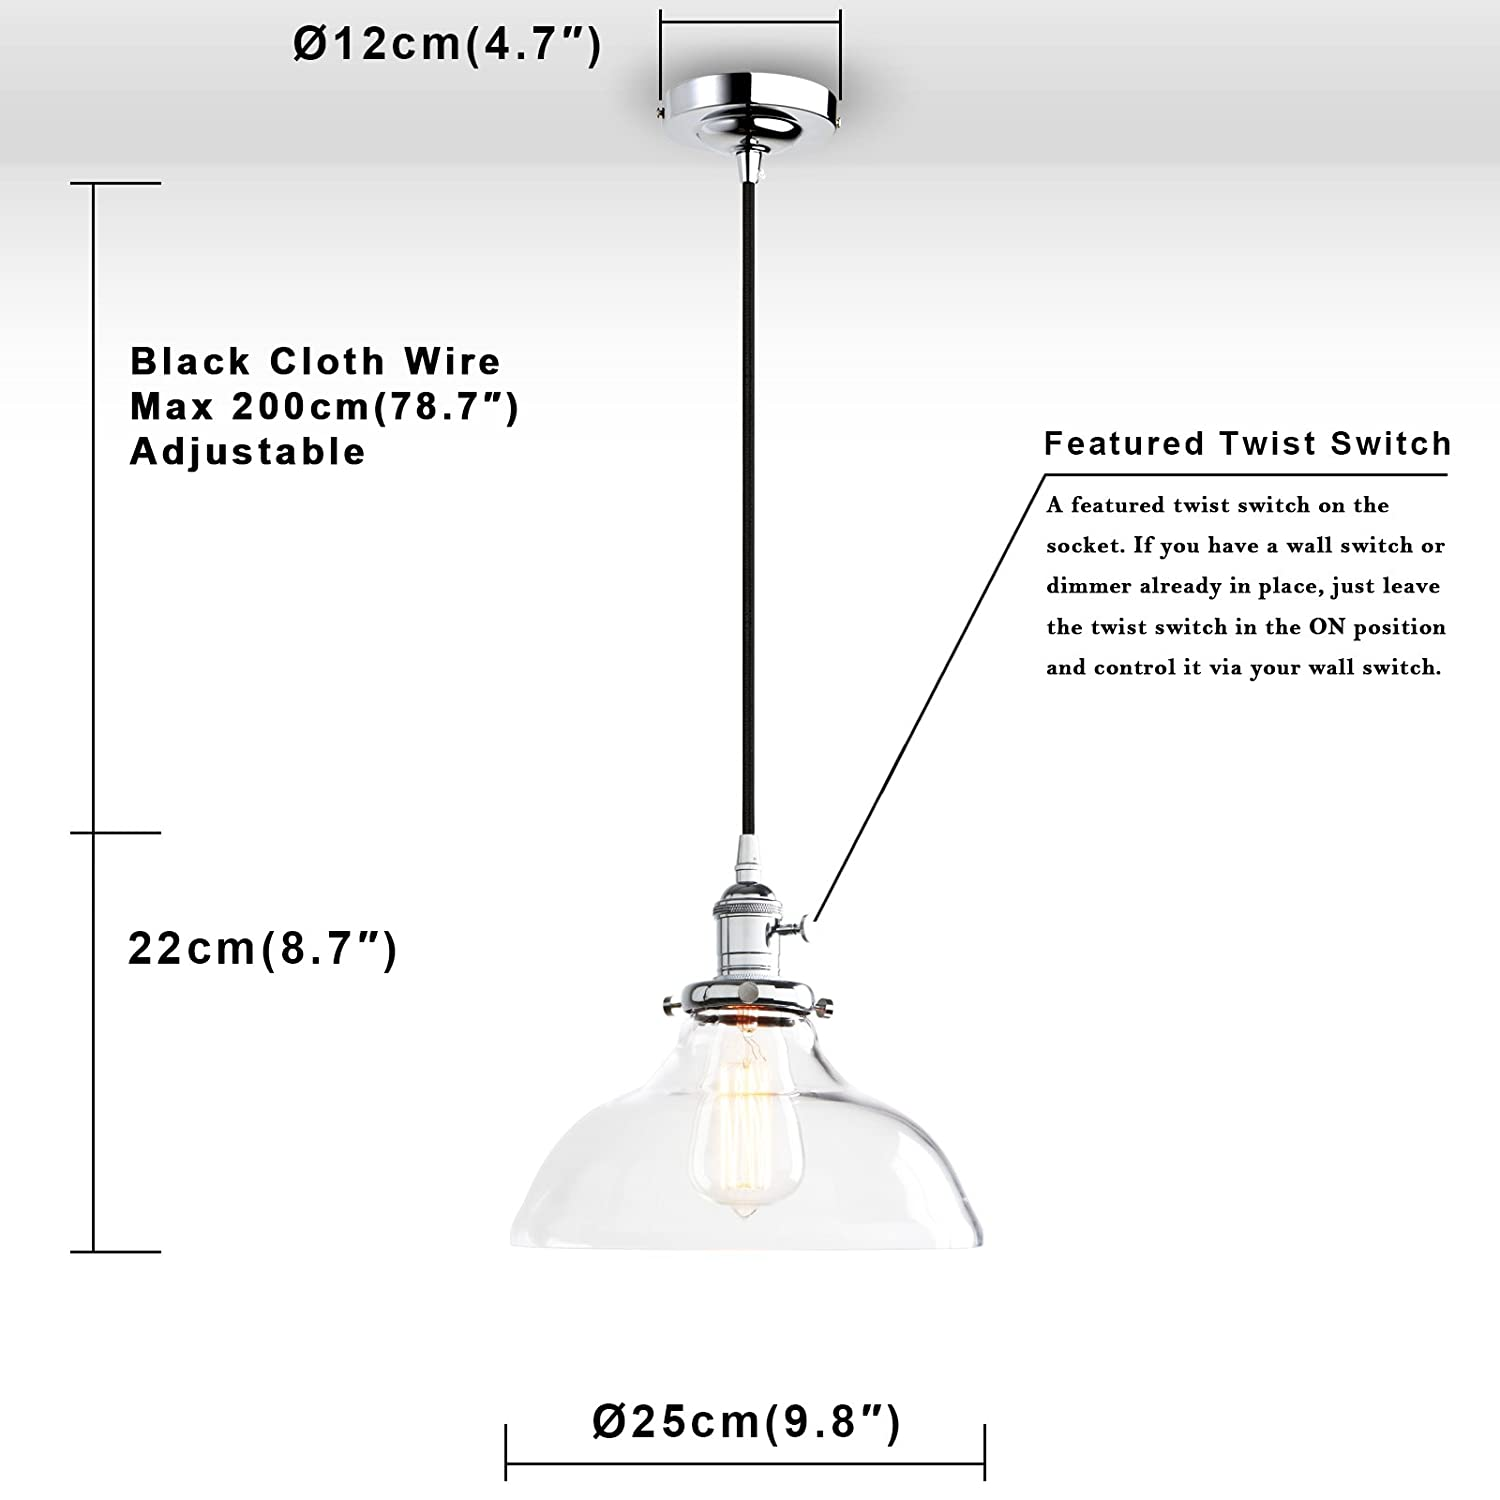 Phansthy 984 Inch Vintage Industrial Pendant Ceiling Light Shade Switch Wiring Diagram Metal Chrome Clear Glass Chandelier Fenthy Fty269a